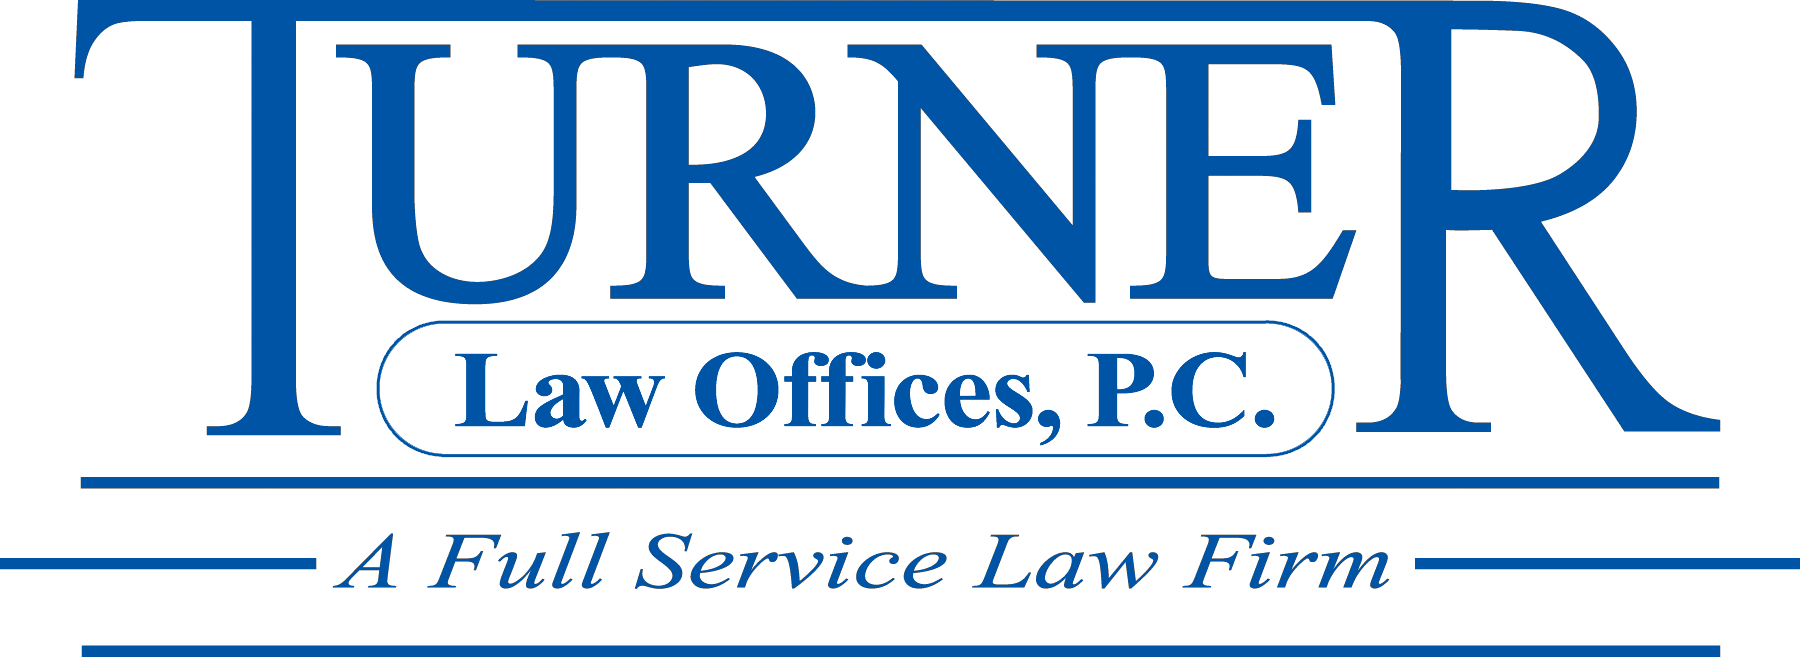 Turner Law Offices